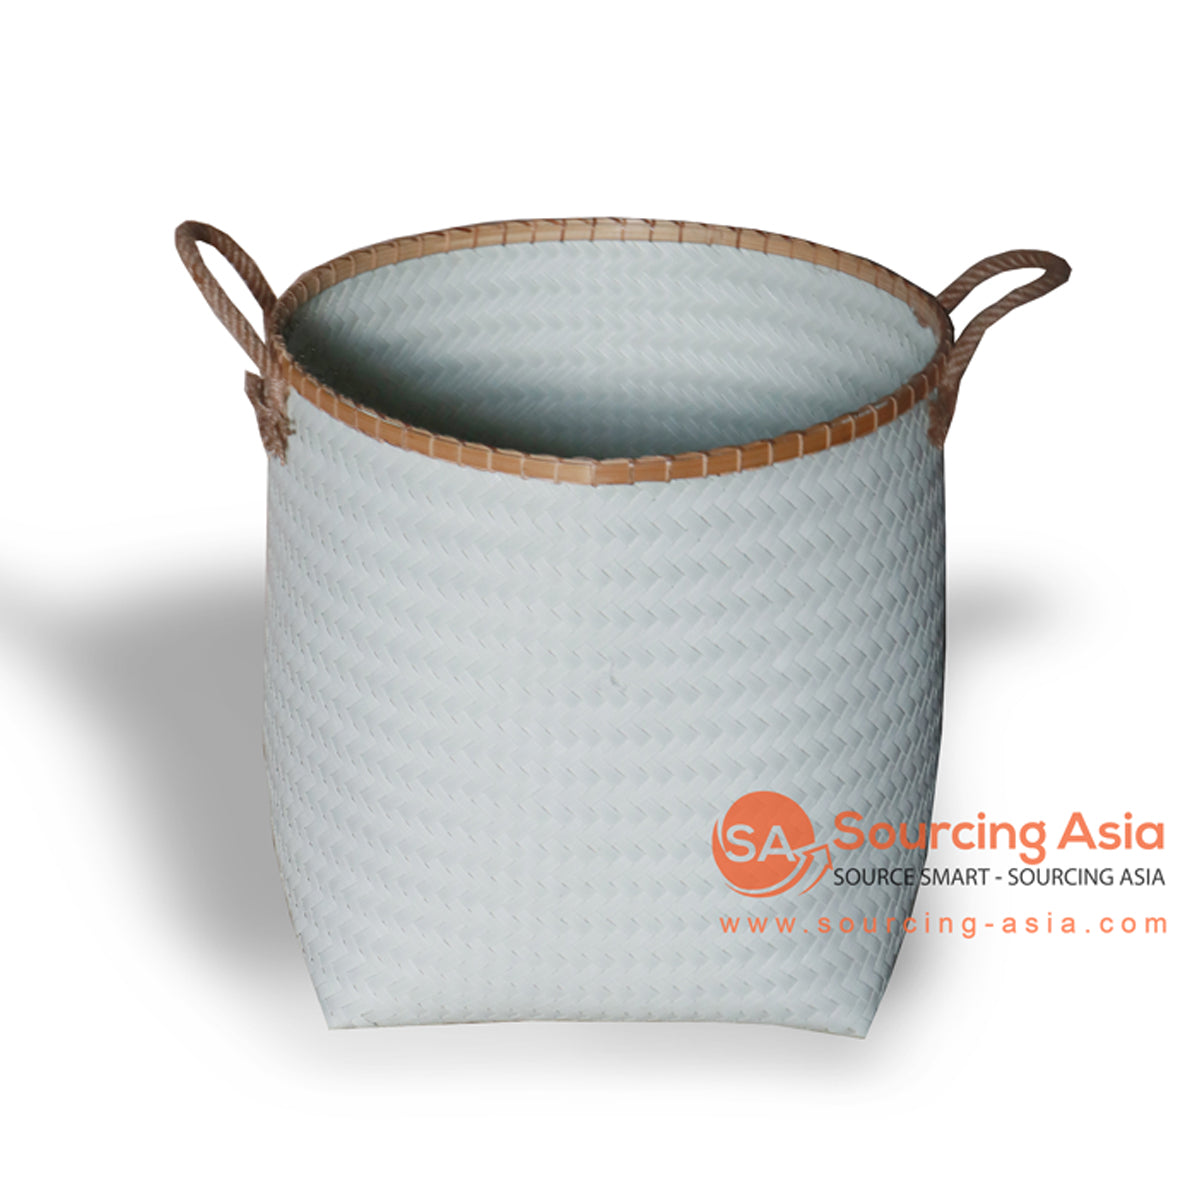 HBS197 SYNTHETIC RATTAN AND NATURAL FIBER LAUNDRY BASKET